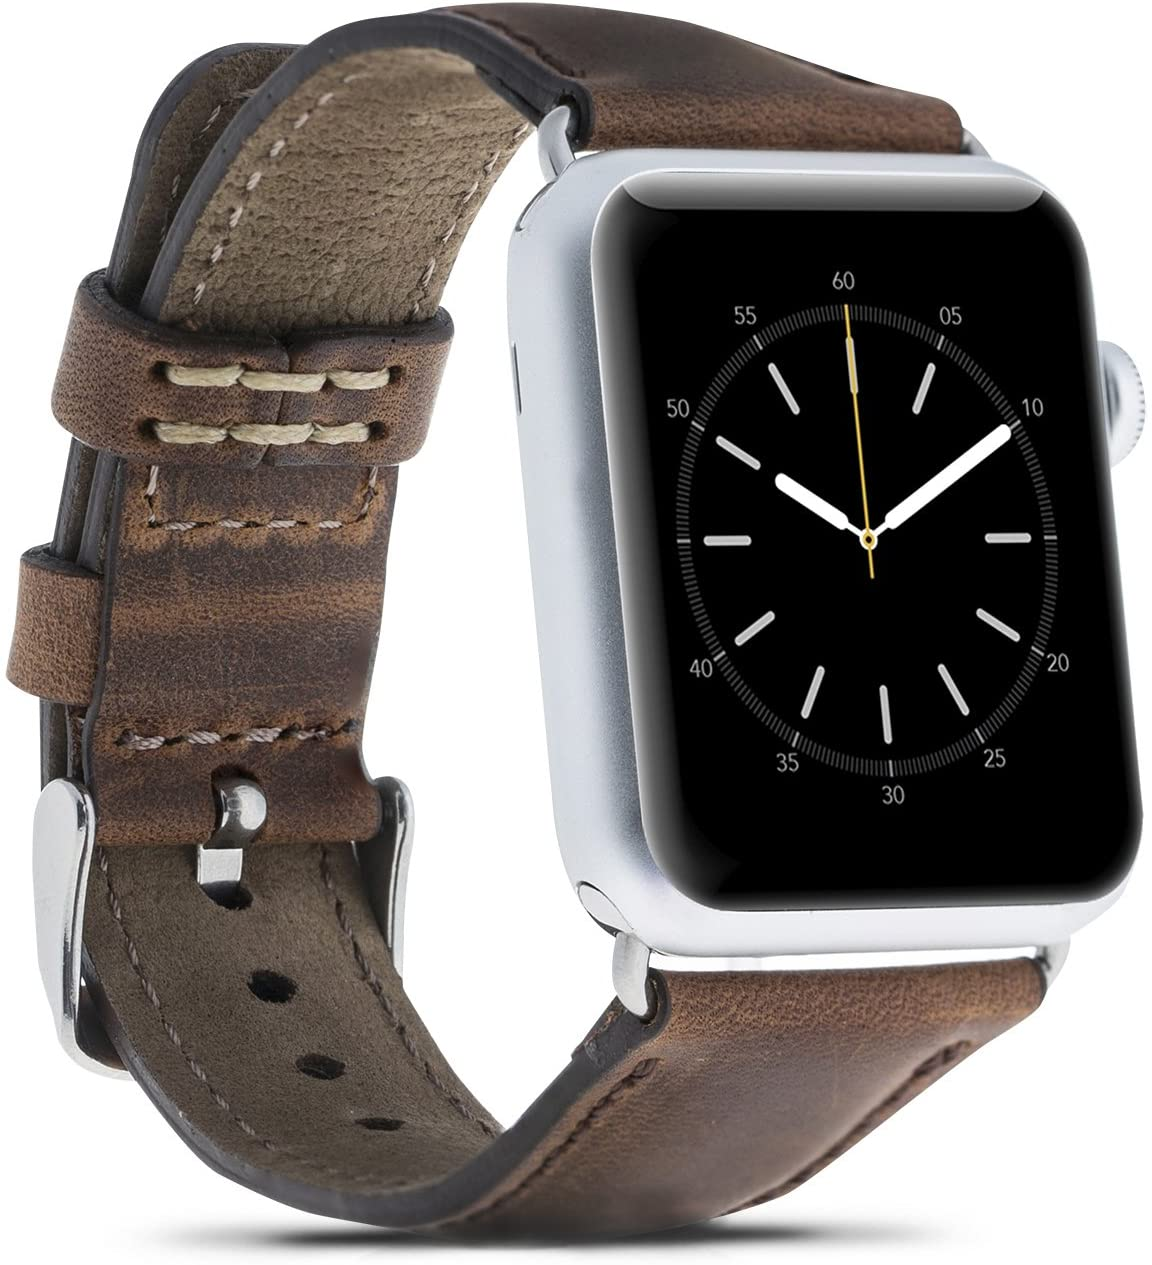 Bouletta Case Handmade Genuine Leather Replaceable Watch Band Wrist Strap for Apple Watch Series 5-4 ( 44 mm ) / 3-2-1 ( 42 mm ) ( Antique Brown, Rosegold Adaptor )